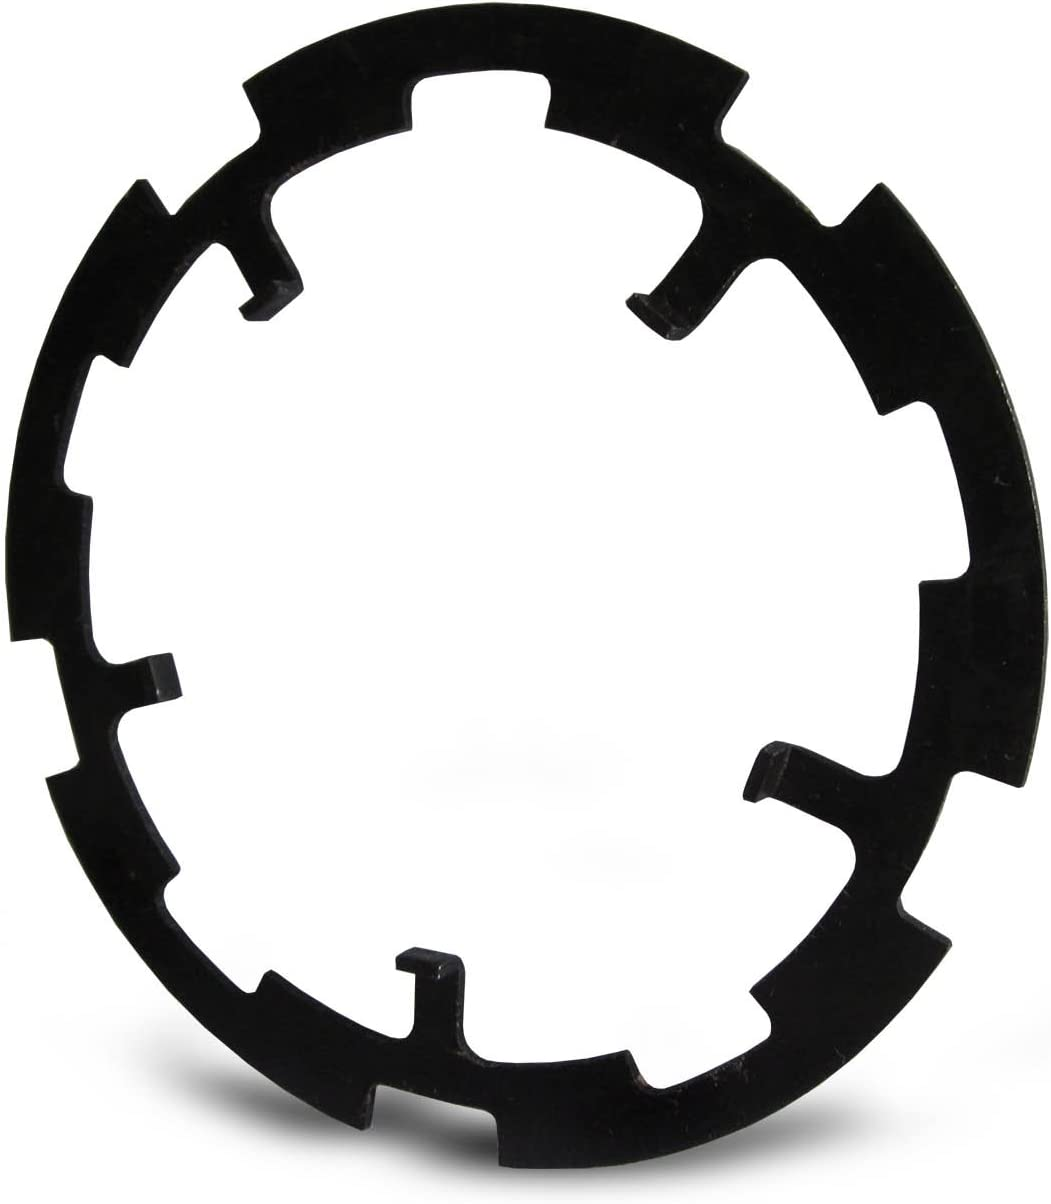 Front Differential Armature Plate 3234407 2007 and Newer Polaris Sportsman 400 500 570 700 800